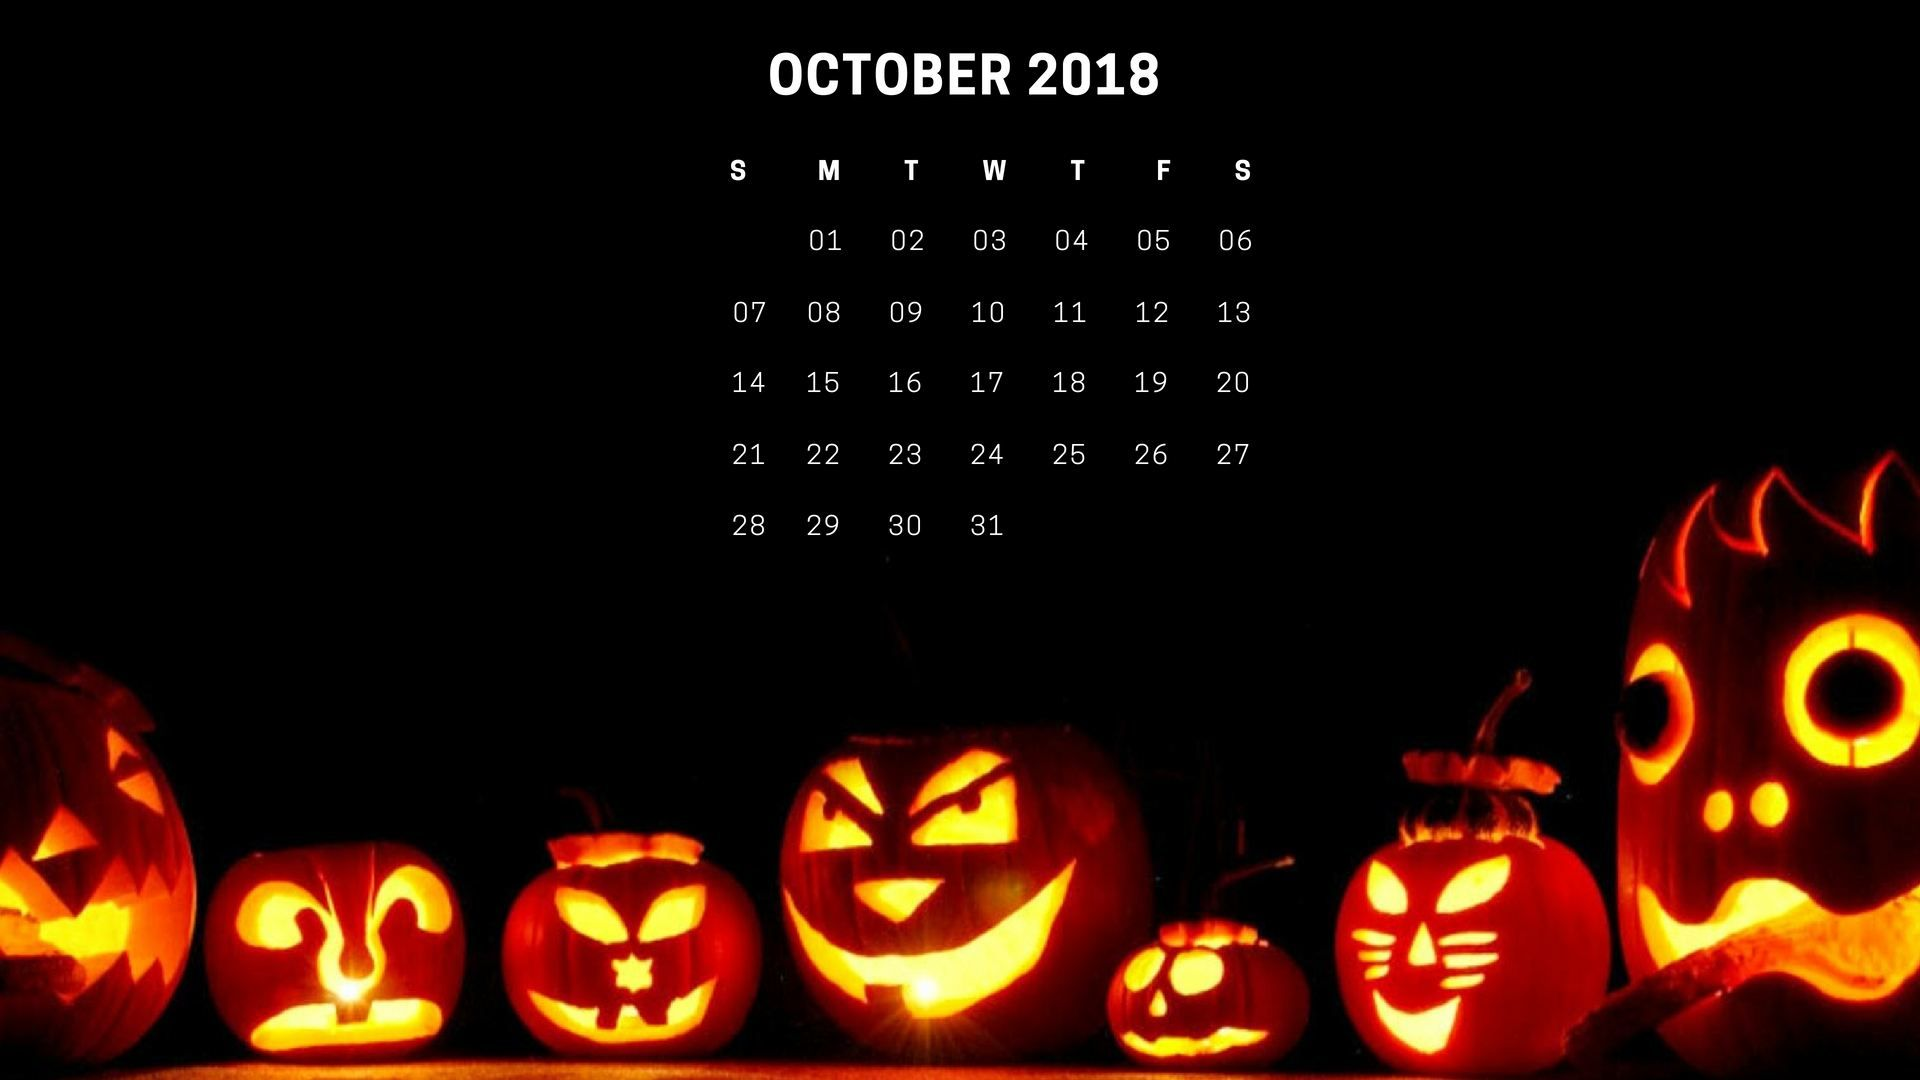 Happy Halloween October 2018 Calendar Wallpaper Calendar Wallpaper Holiday Wallpaper Halloween Wallpaper